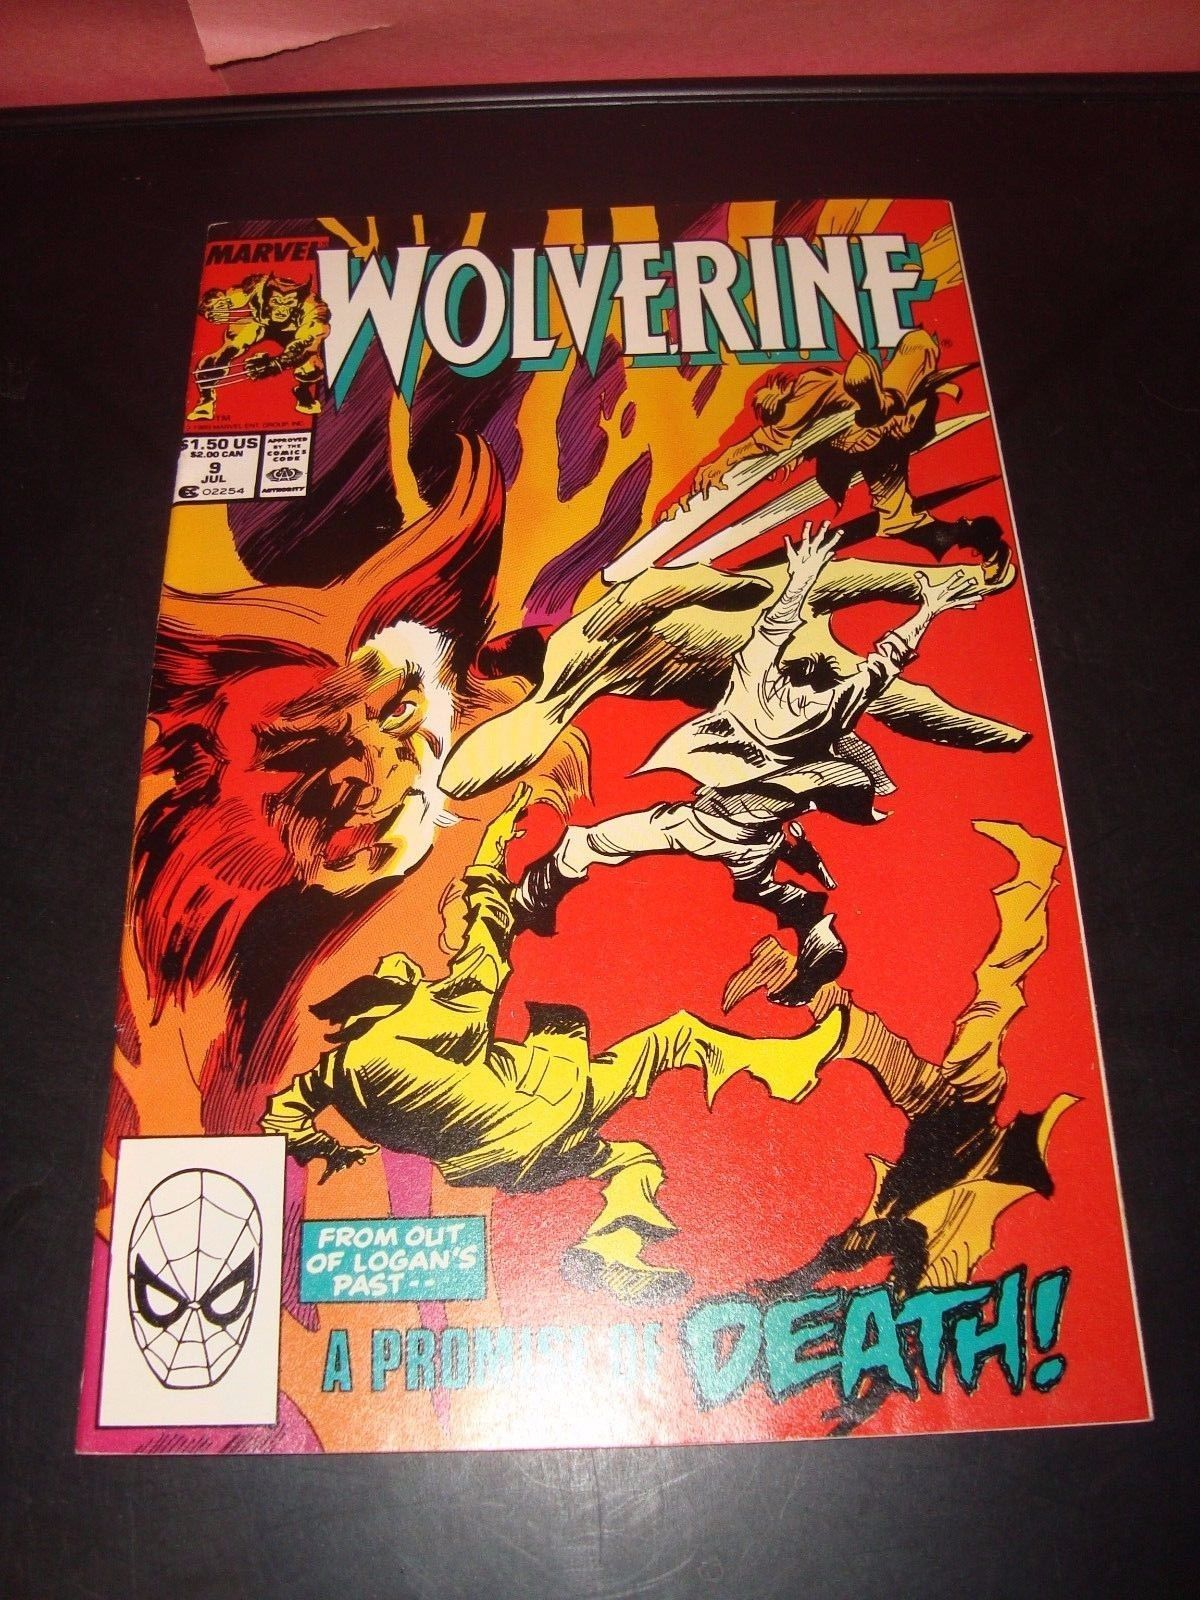 Wolverine #9 Marvel Comic Book VF 8.5 Condition 1989 X-Men